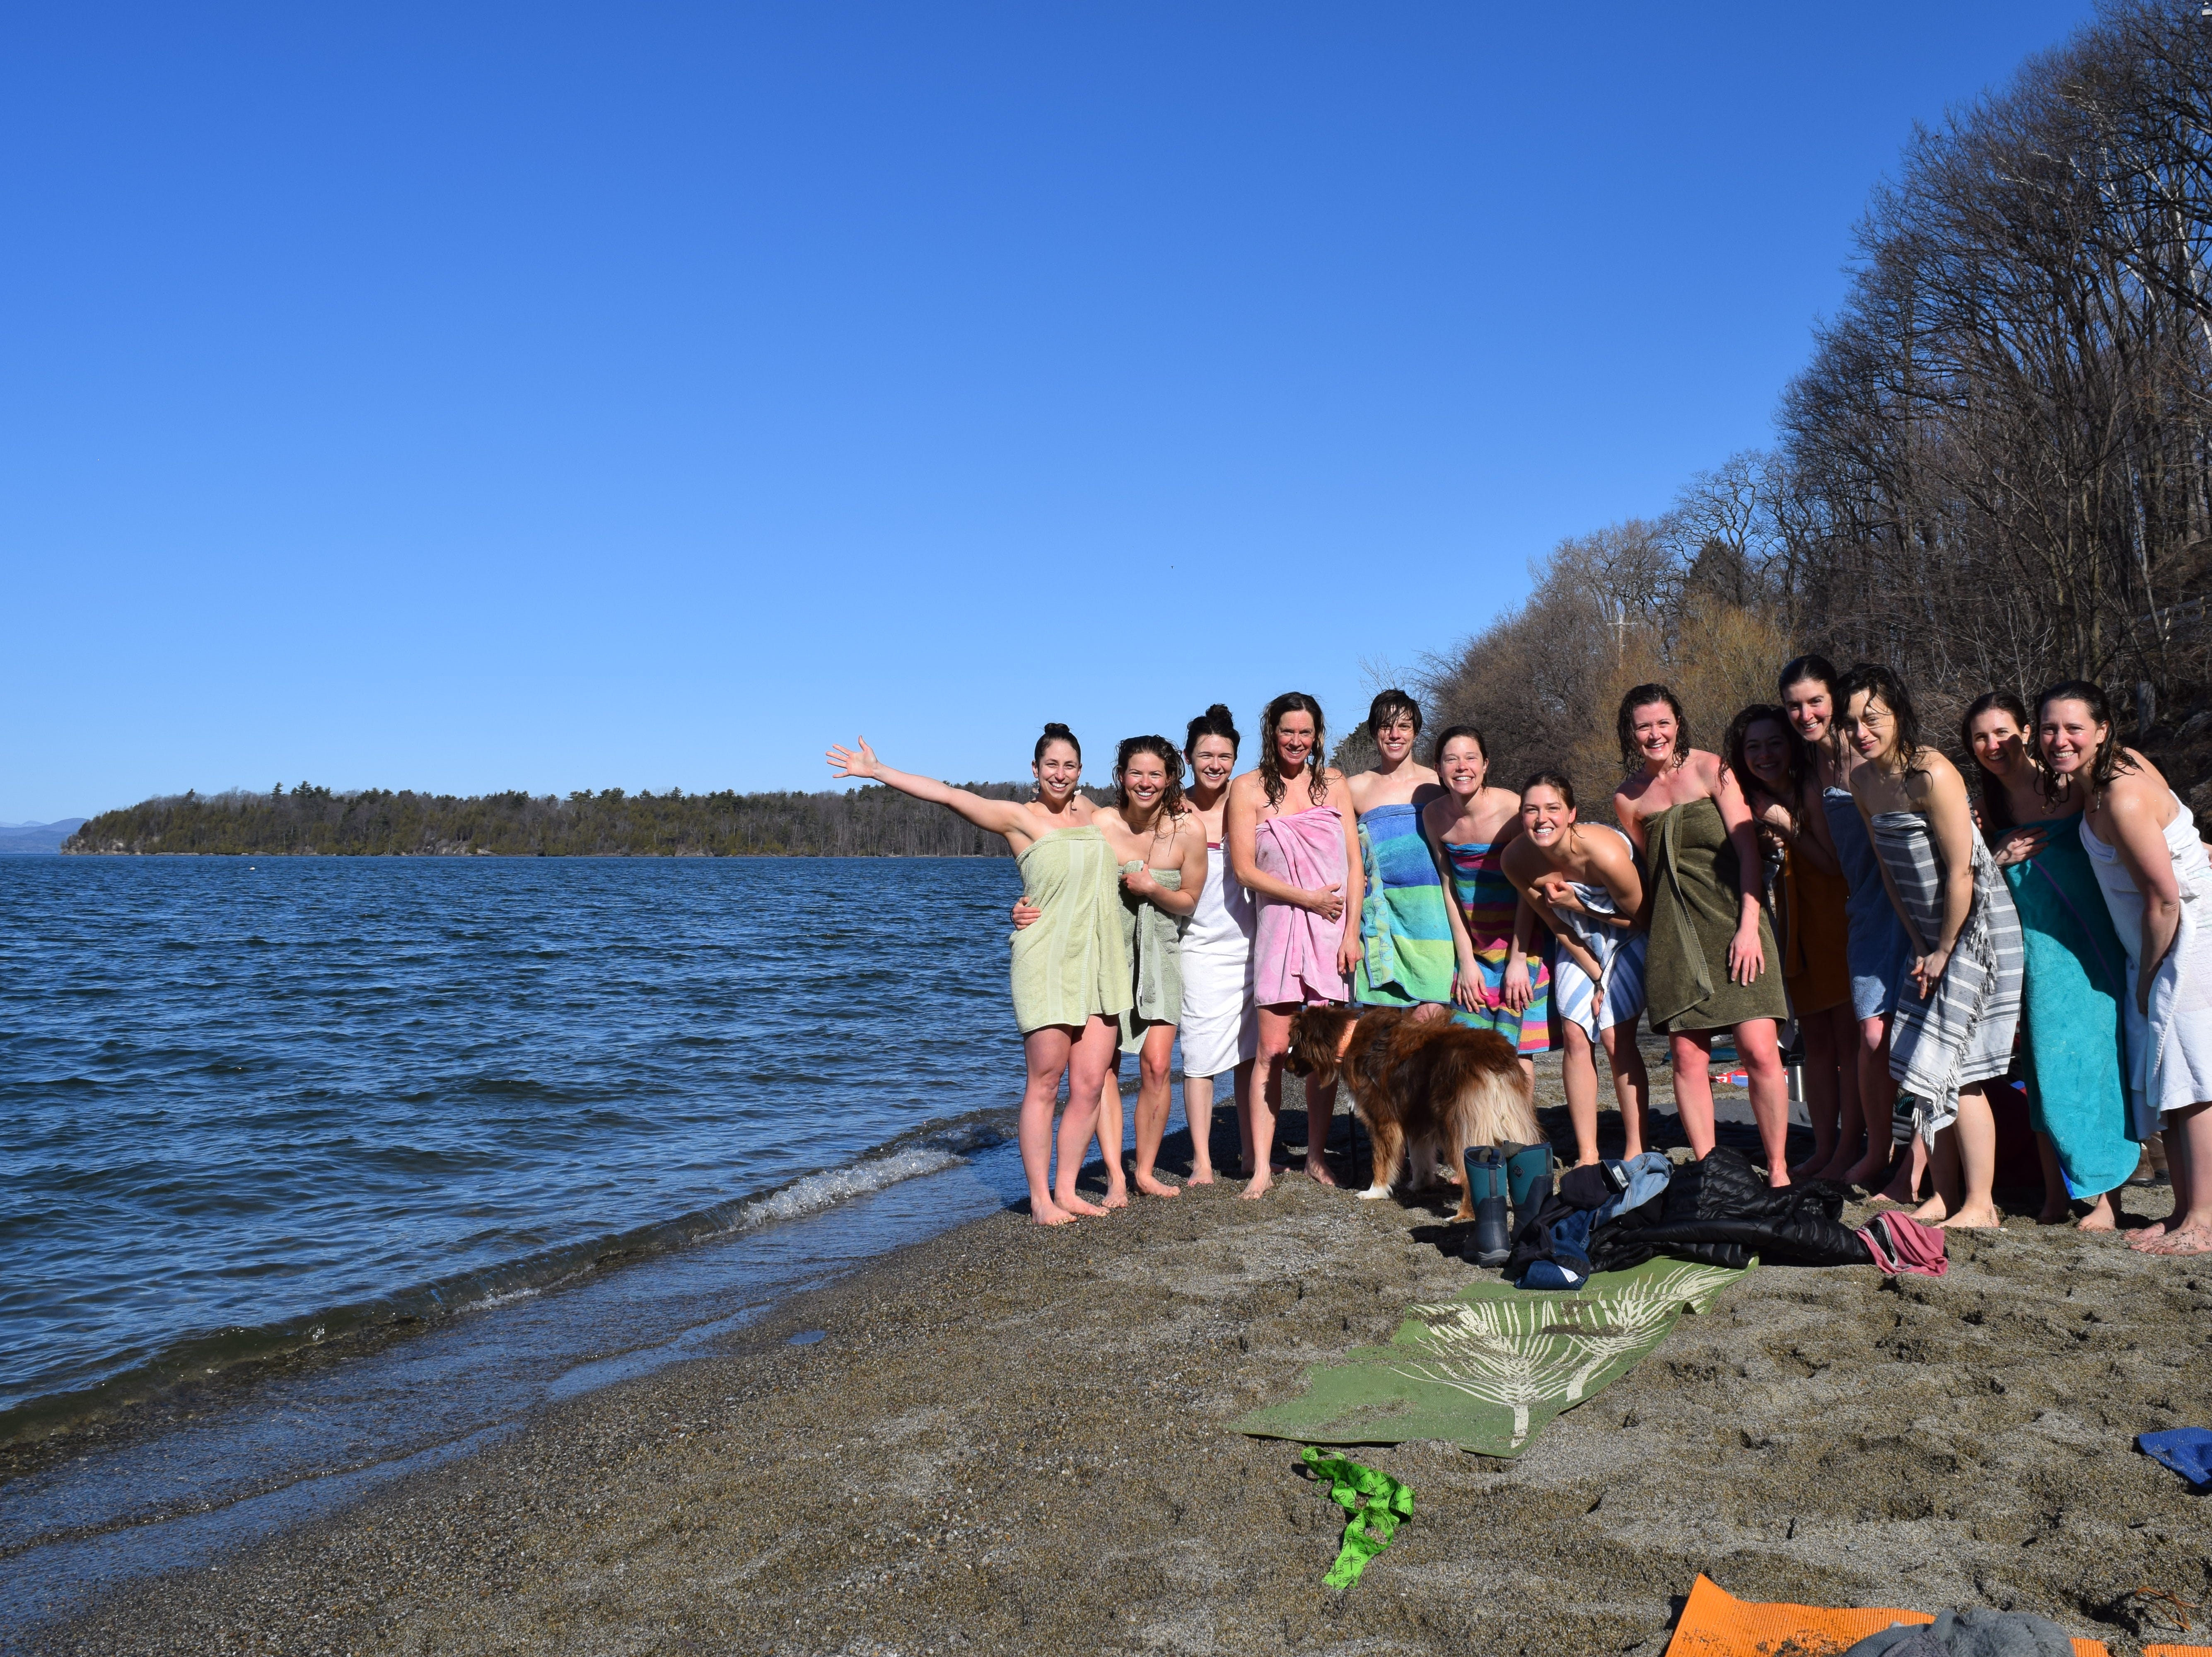 Elise Schadler of Burlington, far left, celebrates her 100th consecutive monthly dip in Lake Champlain with friends at Oakledge Park on April 21, 2018.